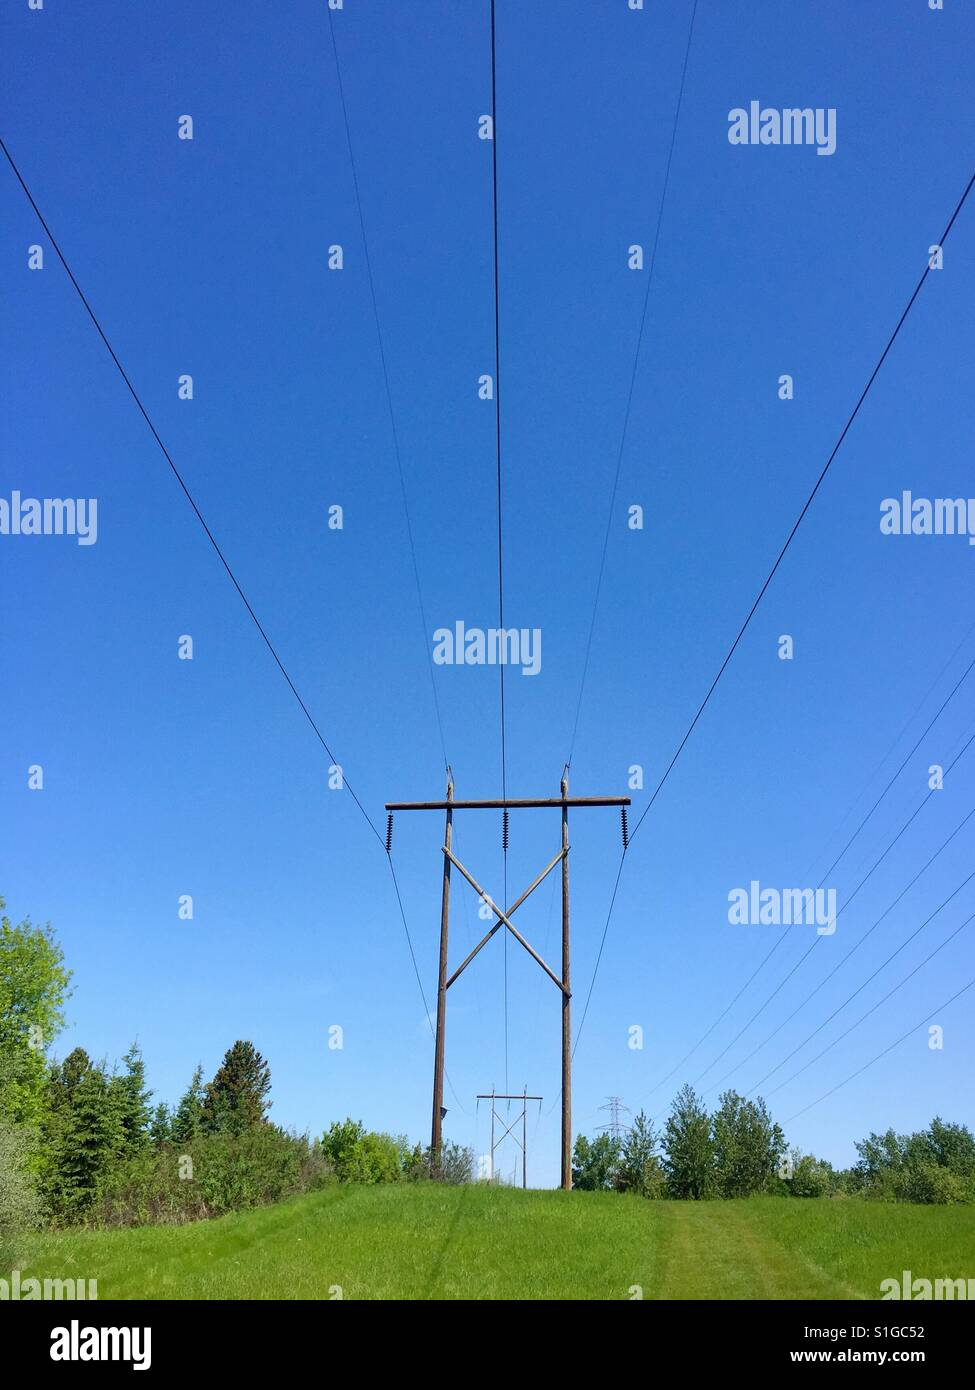 Simple photo of transmission or power lines in green field - Stock Image